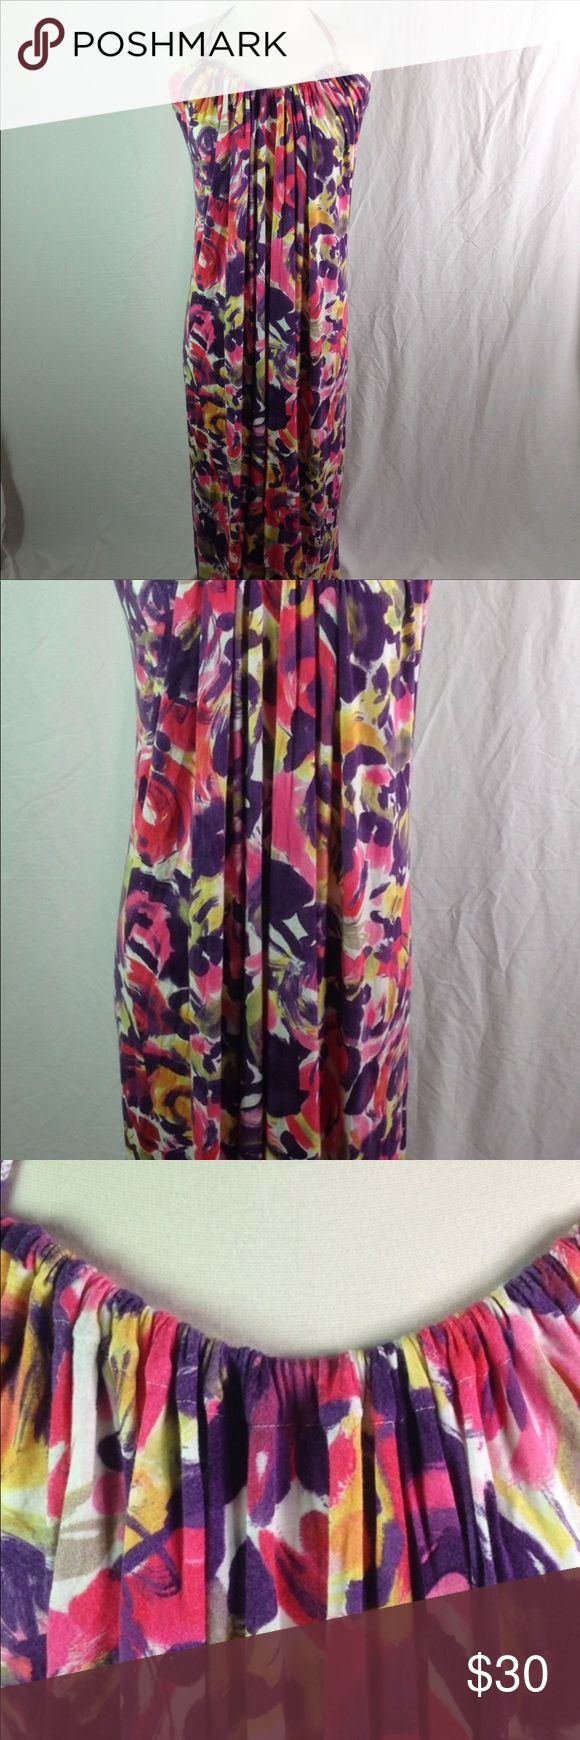 Velvet Graham Spencer Halter Floral Maxi Dress Med Velvet by Graham Spencer Floral Halter Maxi Dress. Perfect beach dress! Easy to carry in your luggage and pull out to wear. Will still look great after being smooshed. Please ask questions! Velvet by Graham & Spencer Dresses Maxi